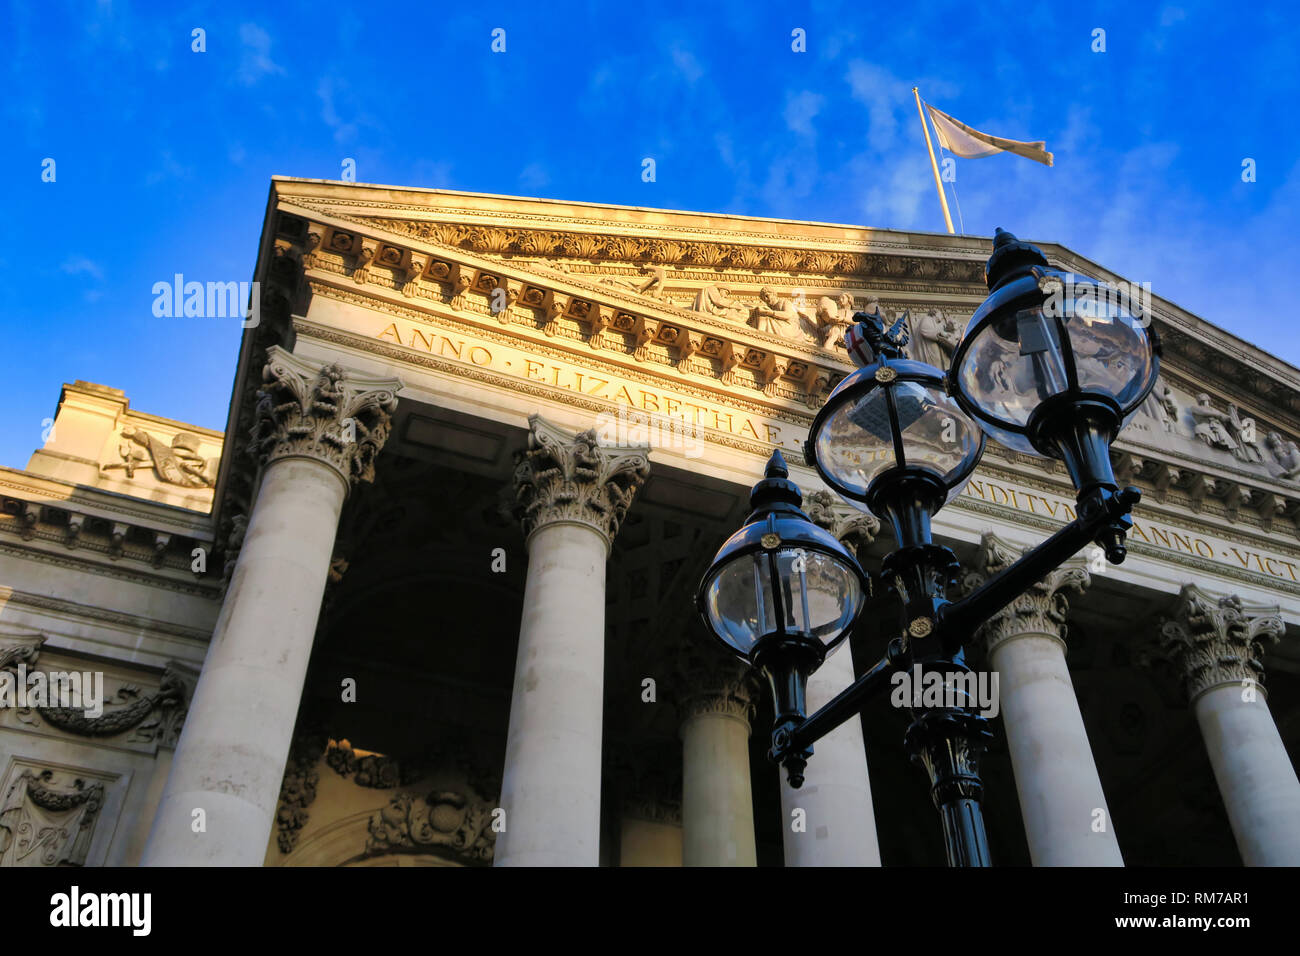 the-royal-exchange-in-city-of-london-london-england-uk-RM7AR1.jpg